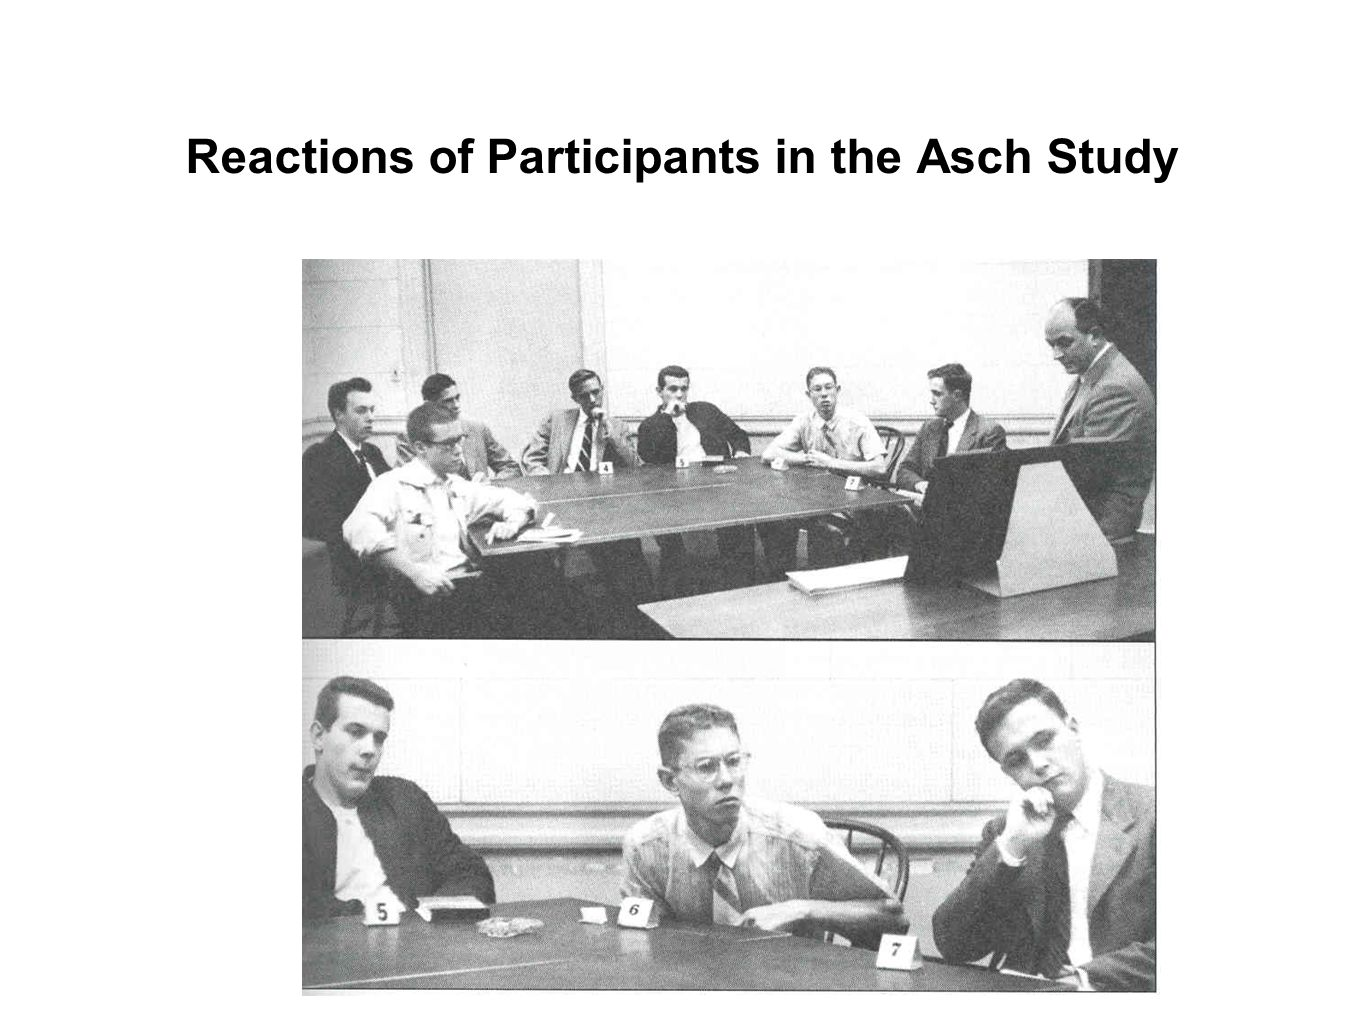 Reactions of Participants in the Asch Study